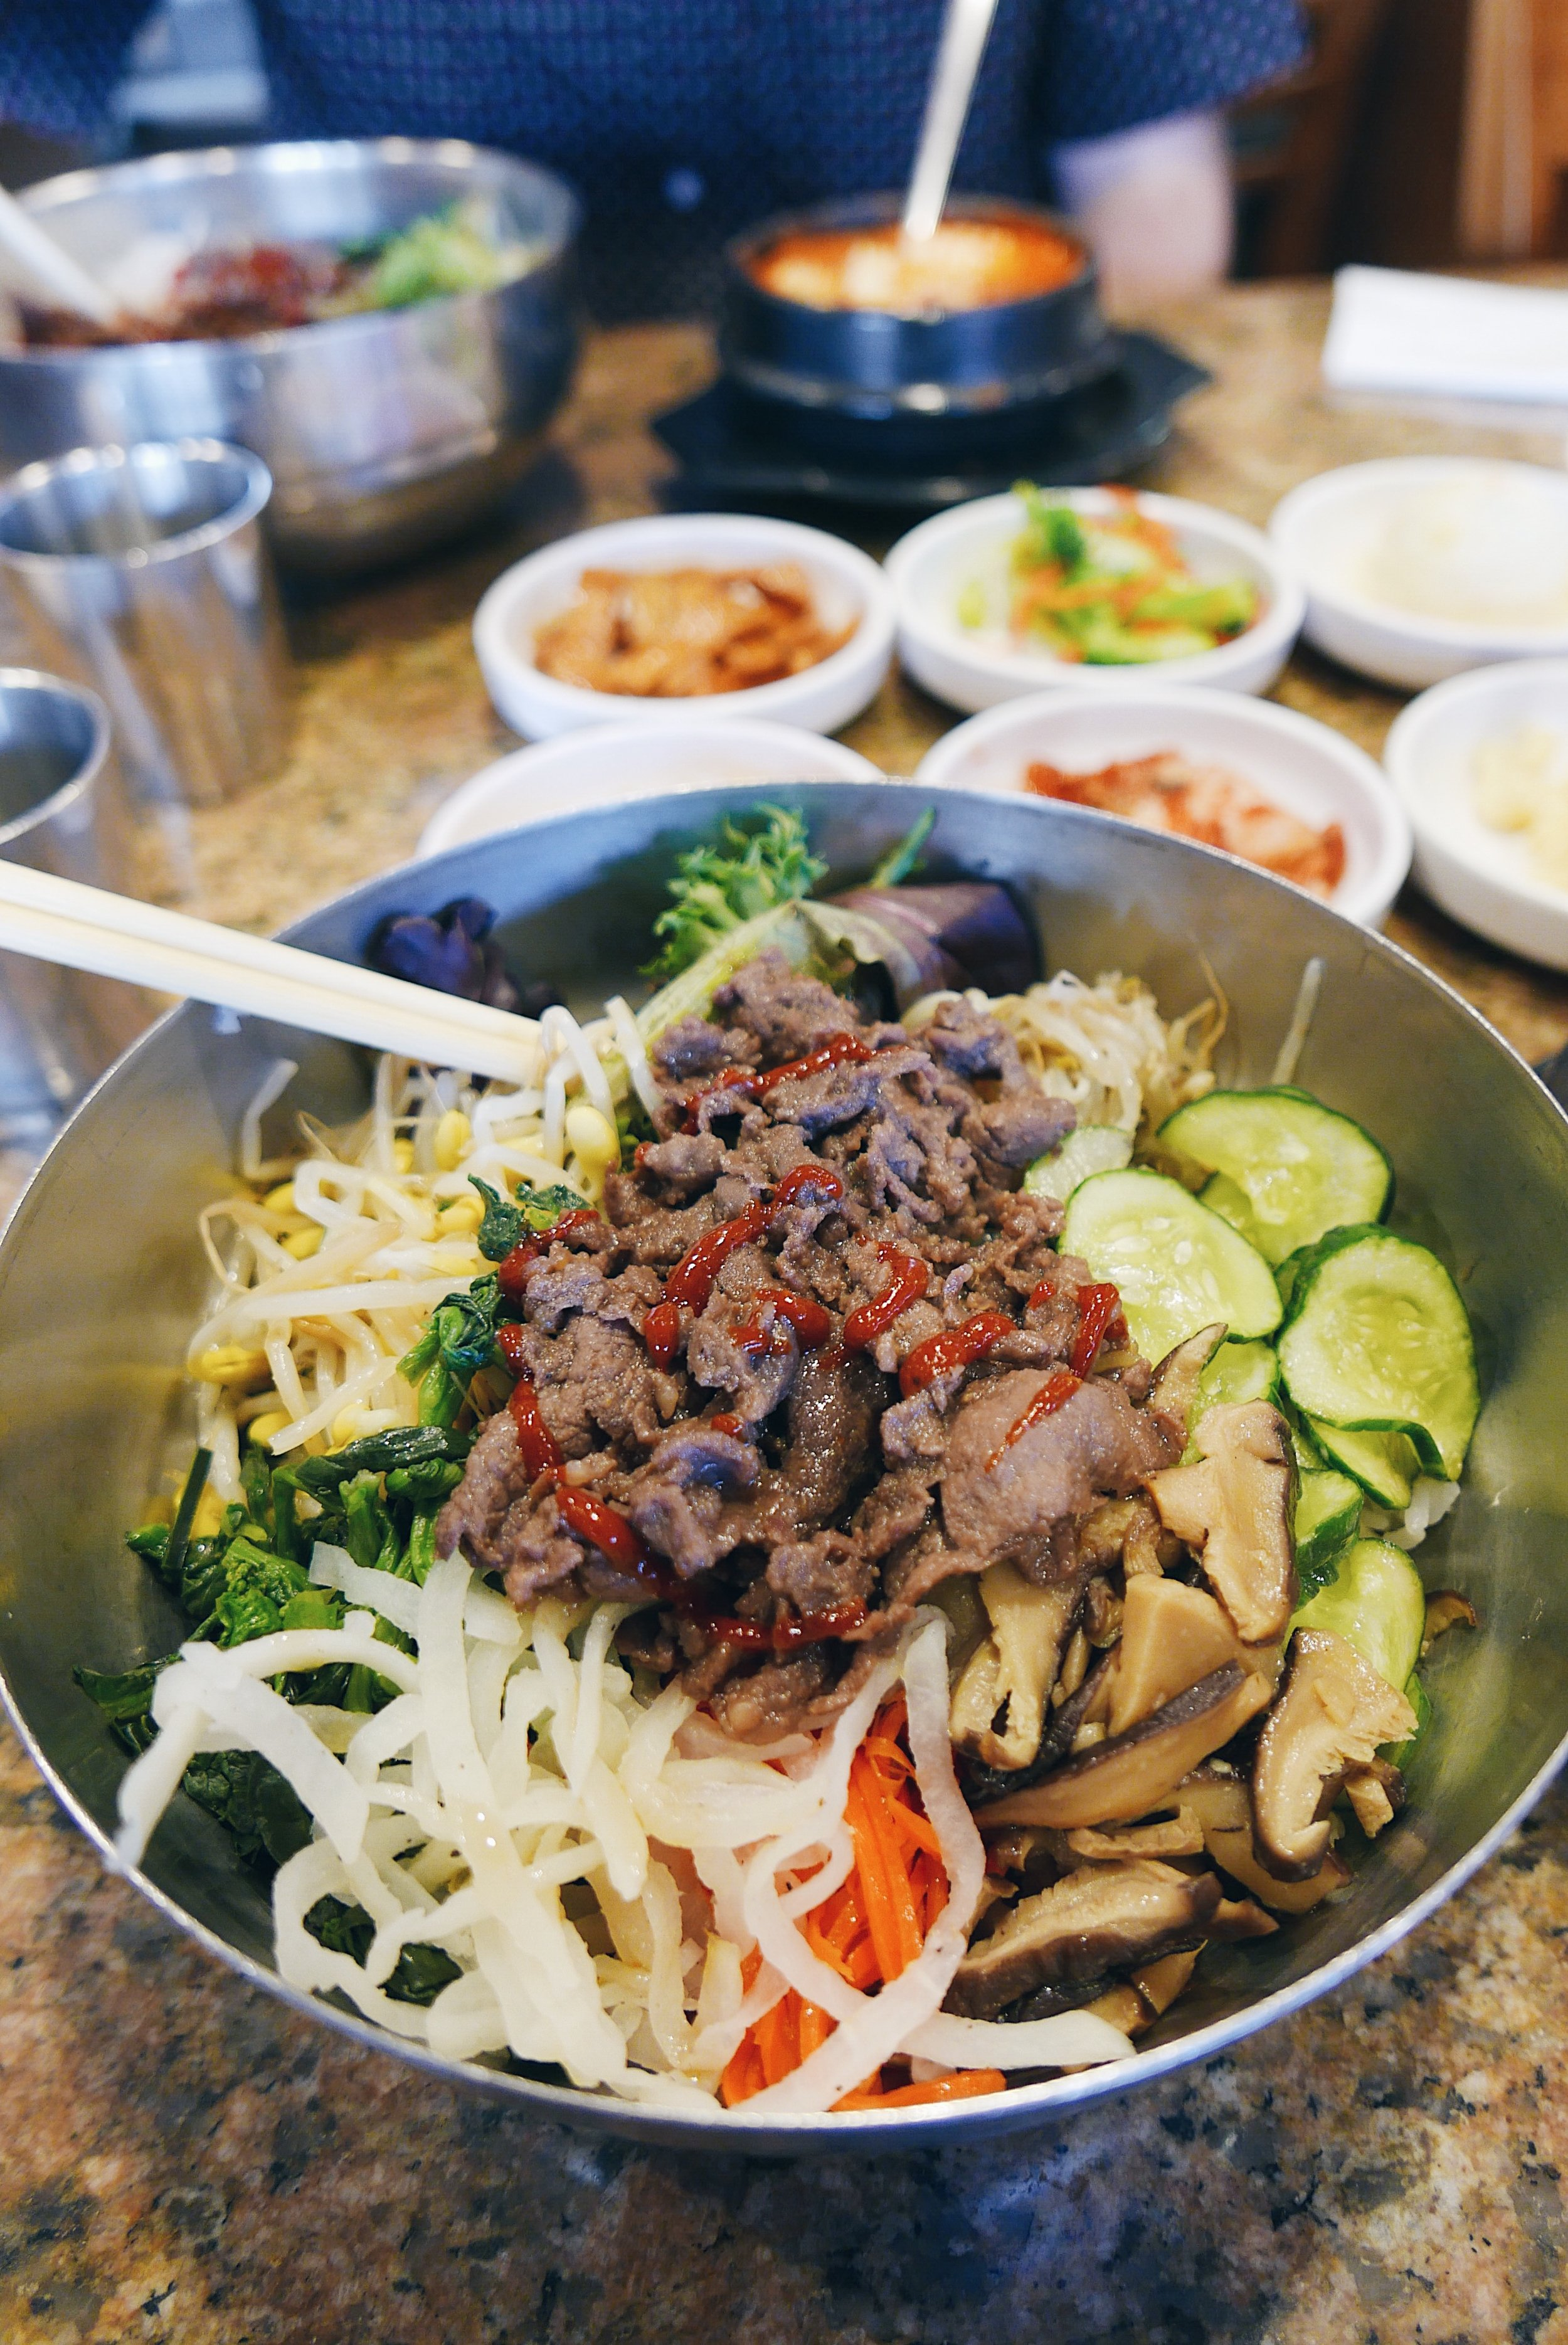 soondubu + Bibimbap = a perfect combo! - Why settle for a side of rice when you can get an entire bowl of rice with veggies and beef bulgogi? This bulgogi bibimbap is the perfect pairing for the hot soondubu.If you're really in the mood to sweat while eating, you can get your bibimbap in a hot stone bowl, too. But I've learned that a great combo is regular bibimbap -- cold -- with the hot soondubu. It's a good balance of temperatures, and sometimes I even like to pour soondubu broth onto my bibimbap.